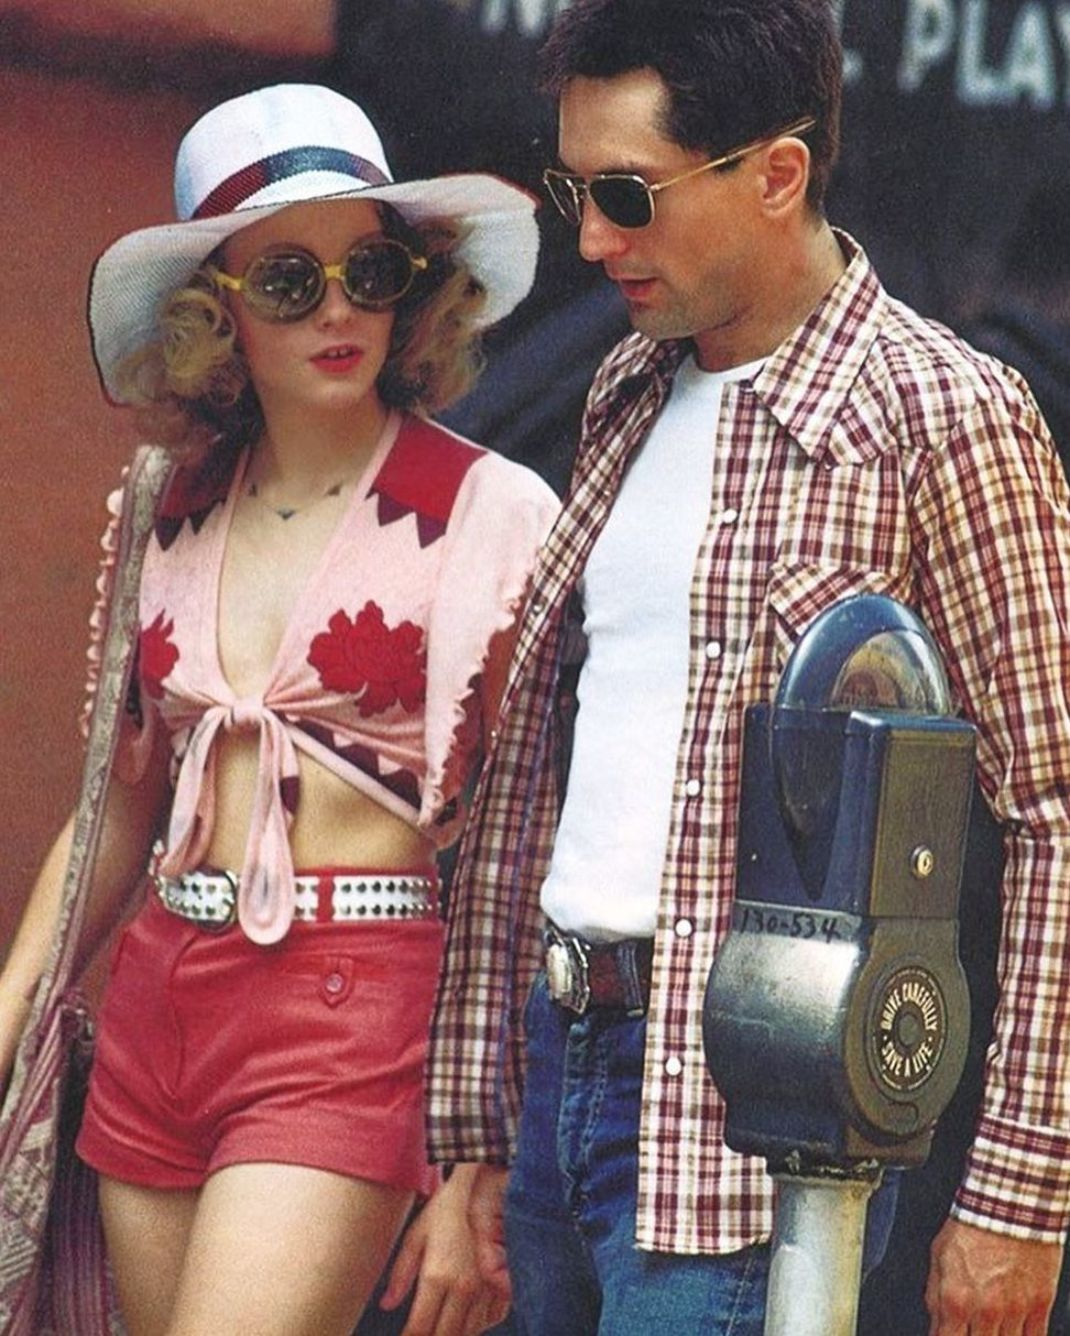 Jodie Foster And Robert De Niro Behind The Scenes Of Martin Scorsese S Taxi Driver Jodie Foster Taxi Driver Be With You Movie